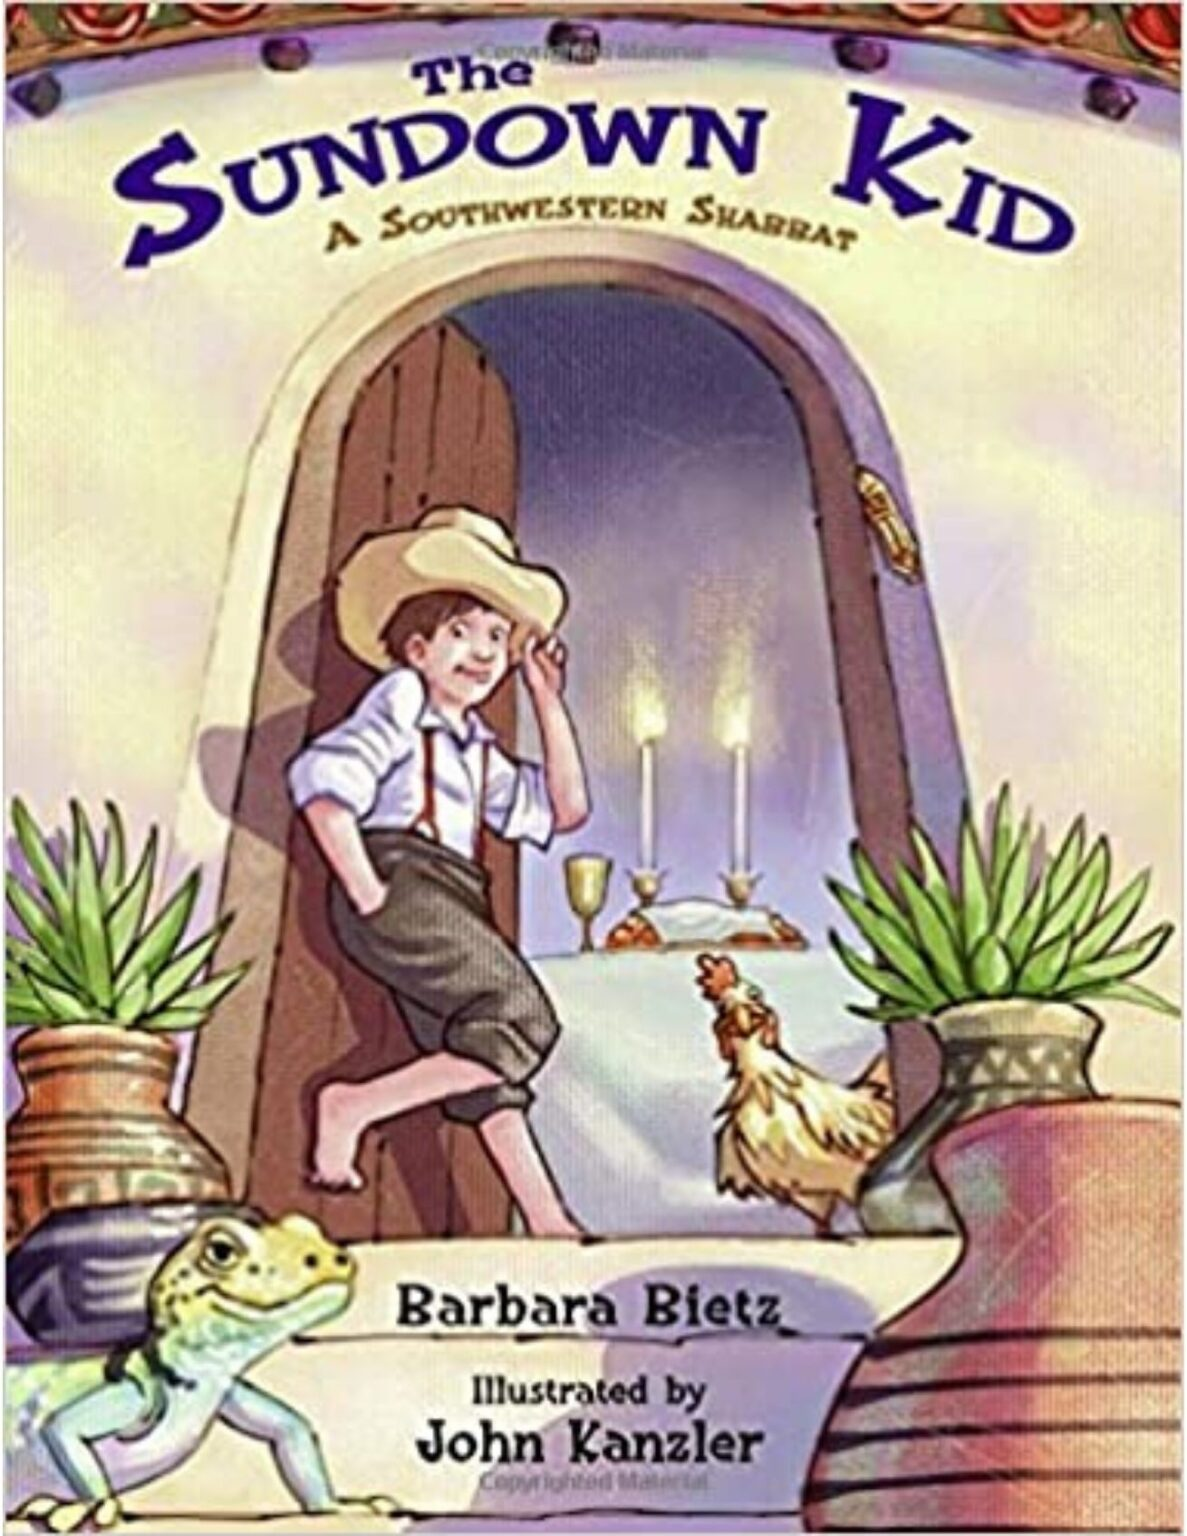 The Sundown Kid